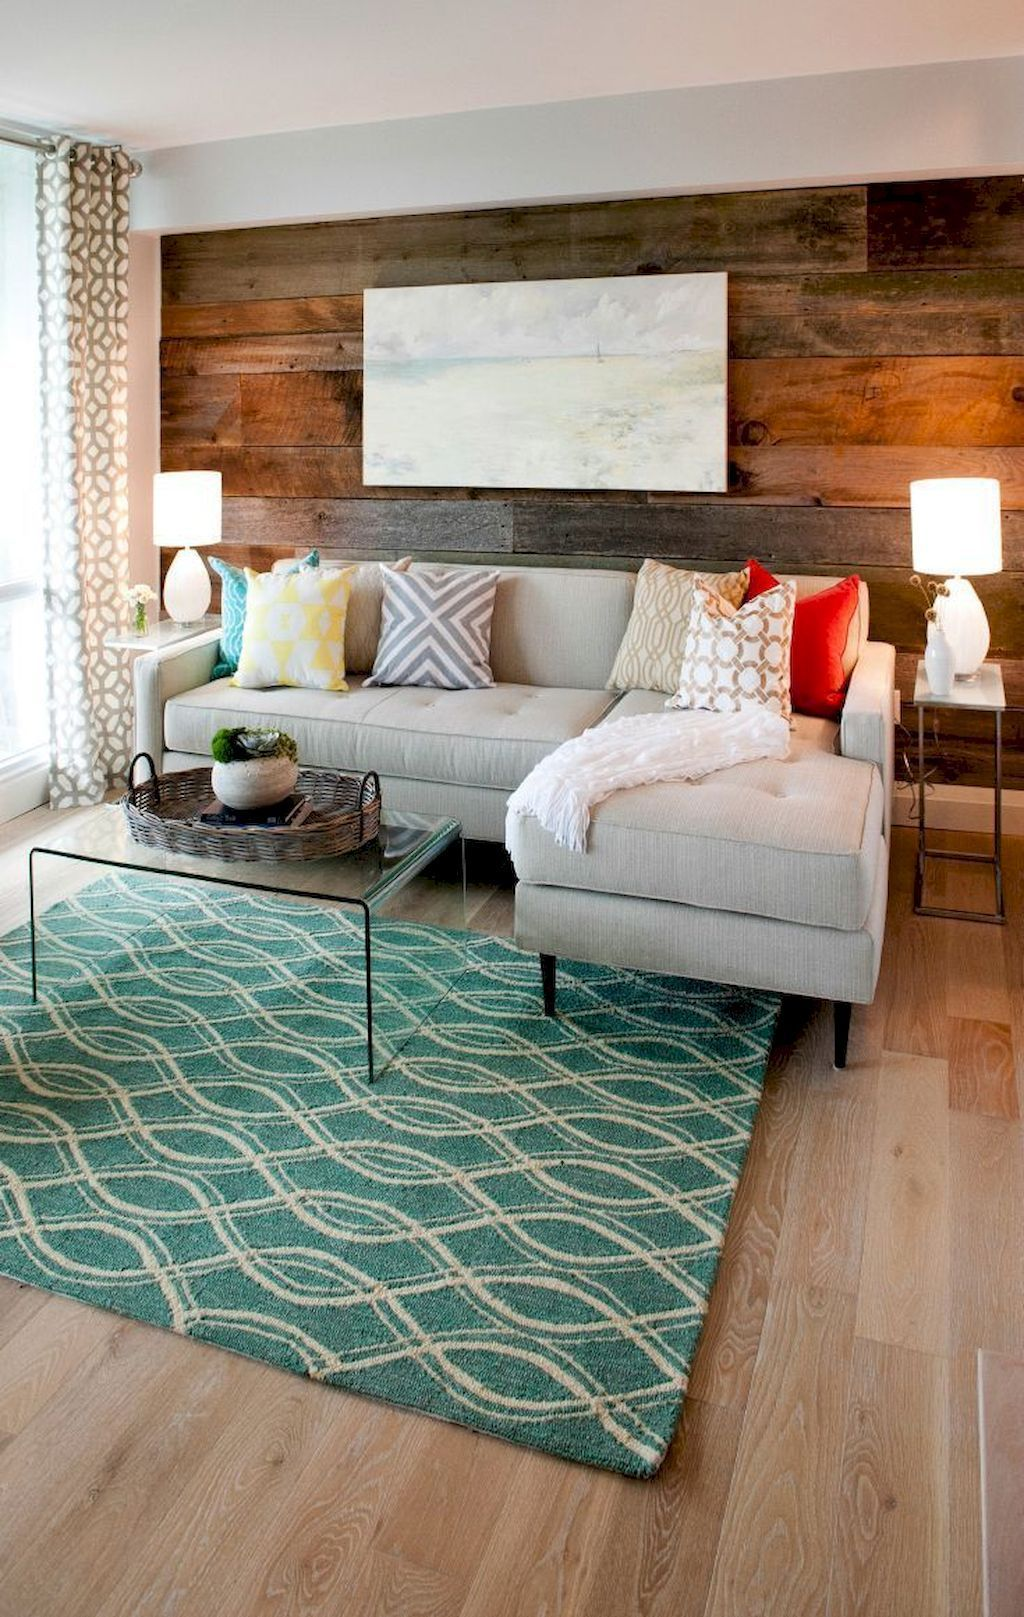 Best DIY Small Living Room Ideas On a Budget 21 | Property ...